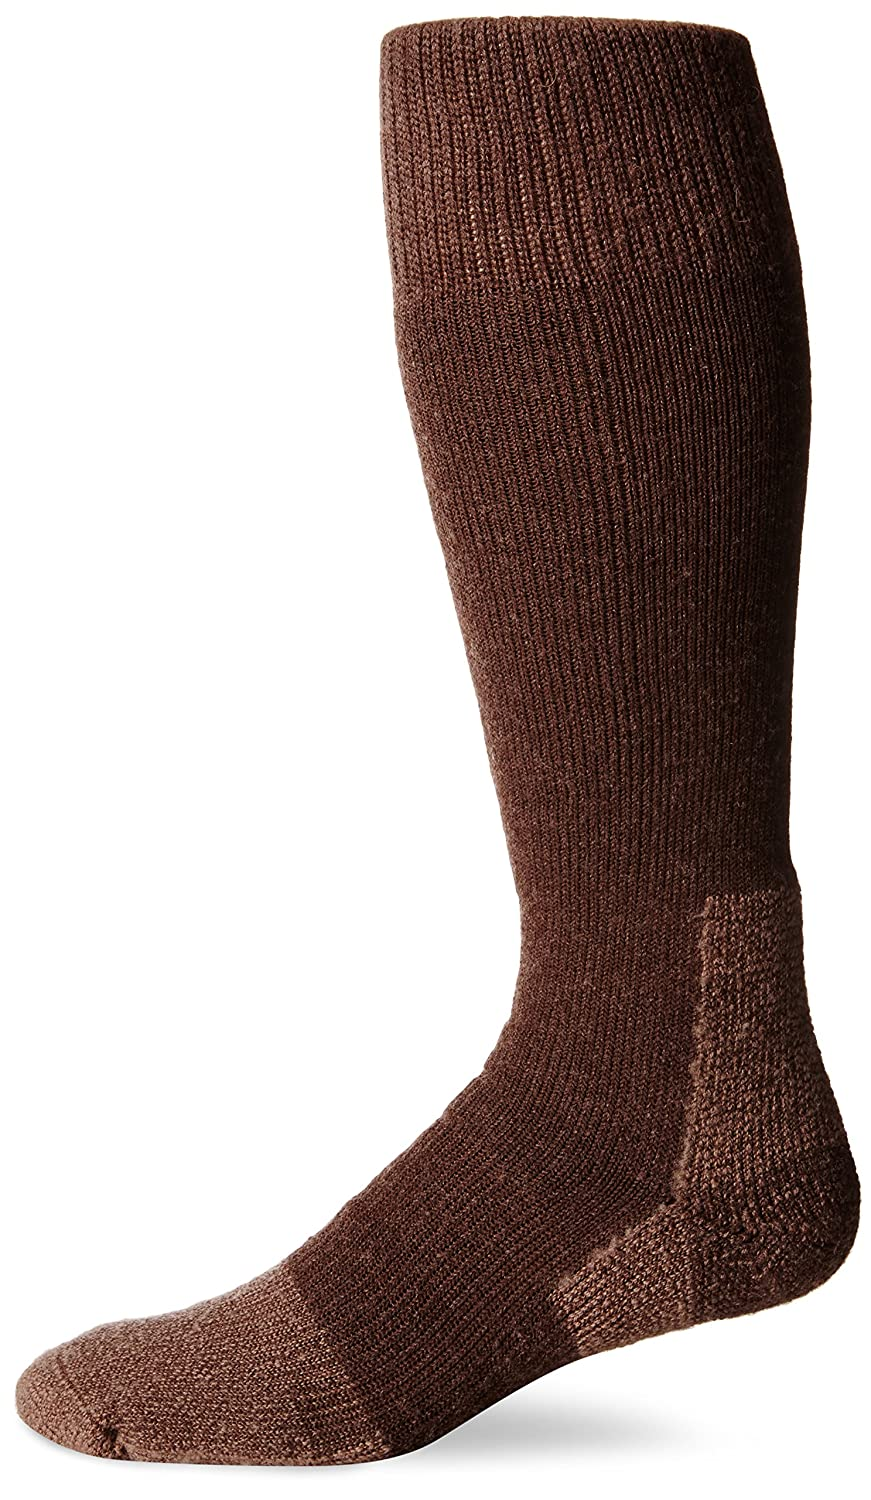 Men's - Women's Extreme Cold Thick Padded Thermal Wool Over-the-calf Socks Thorlo Men's Socks EXCOU